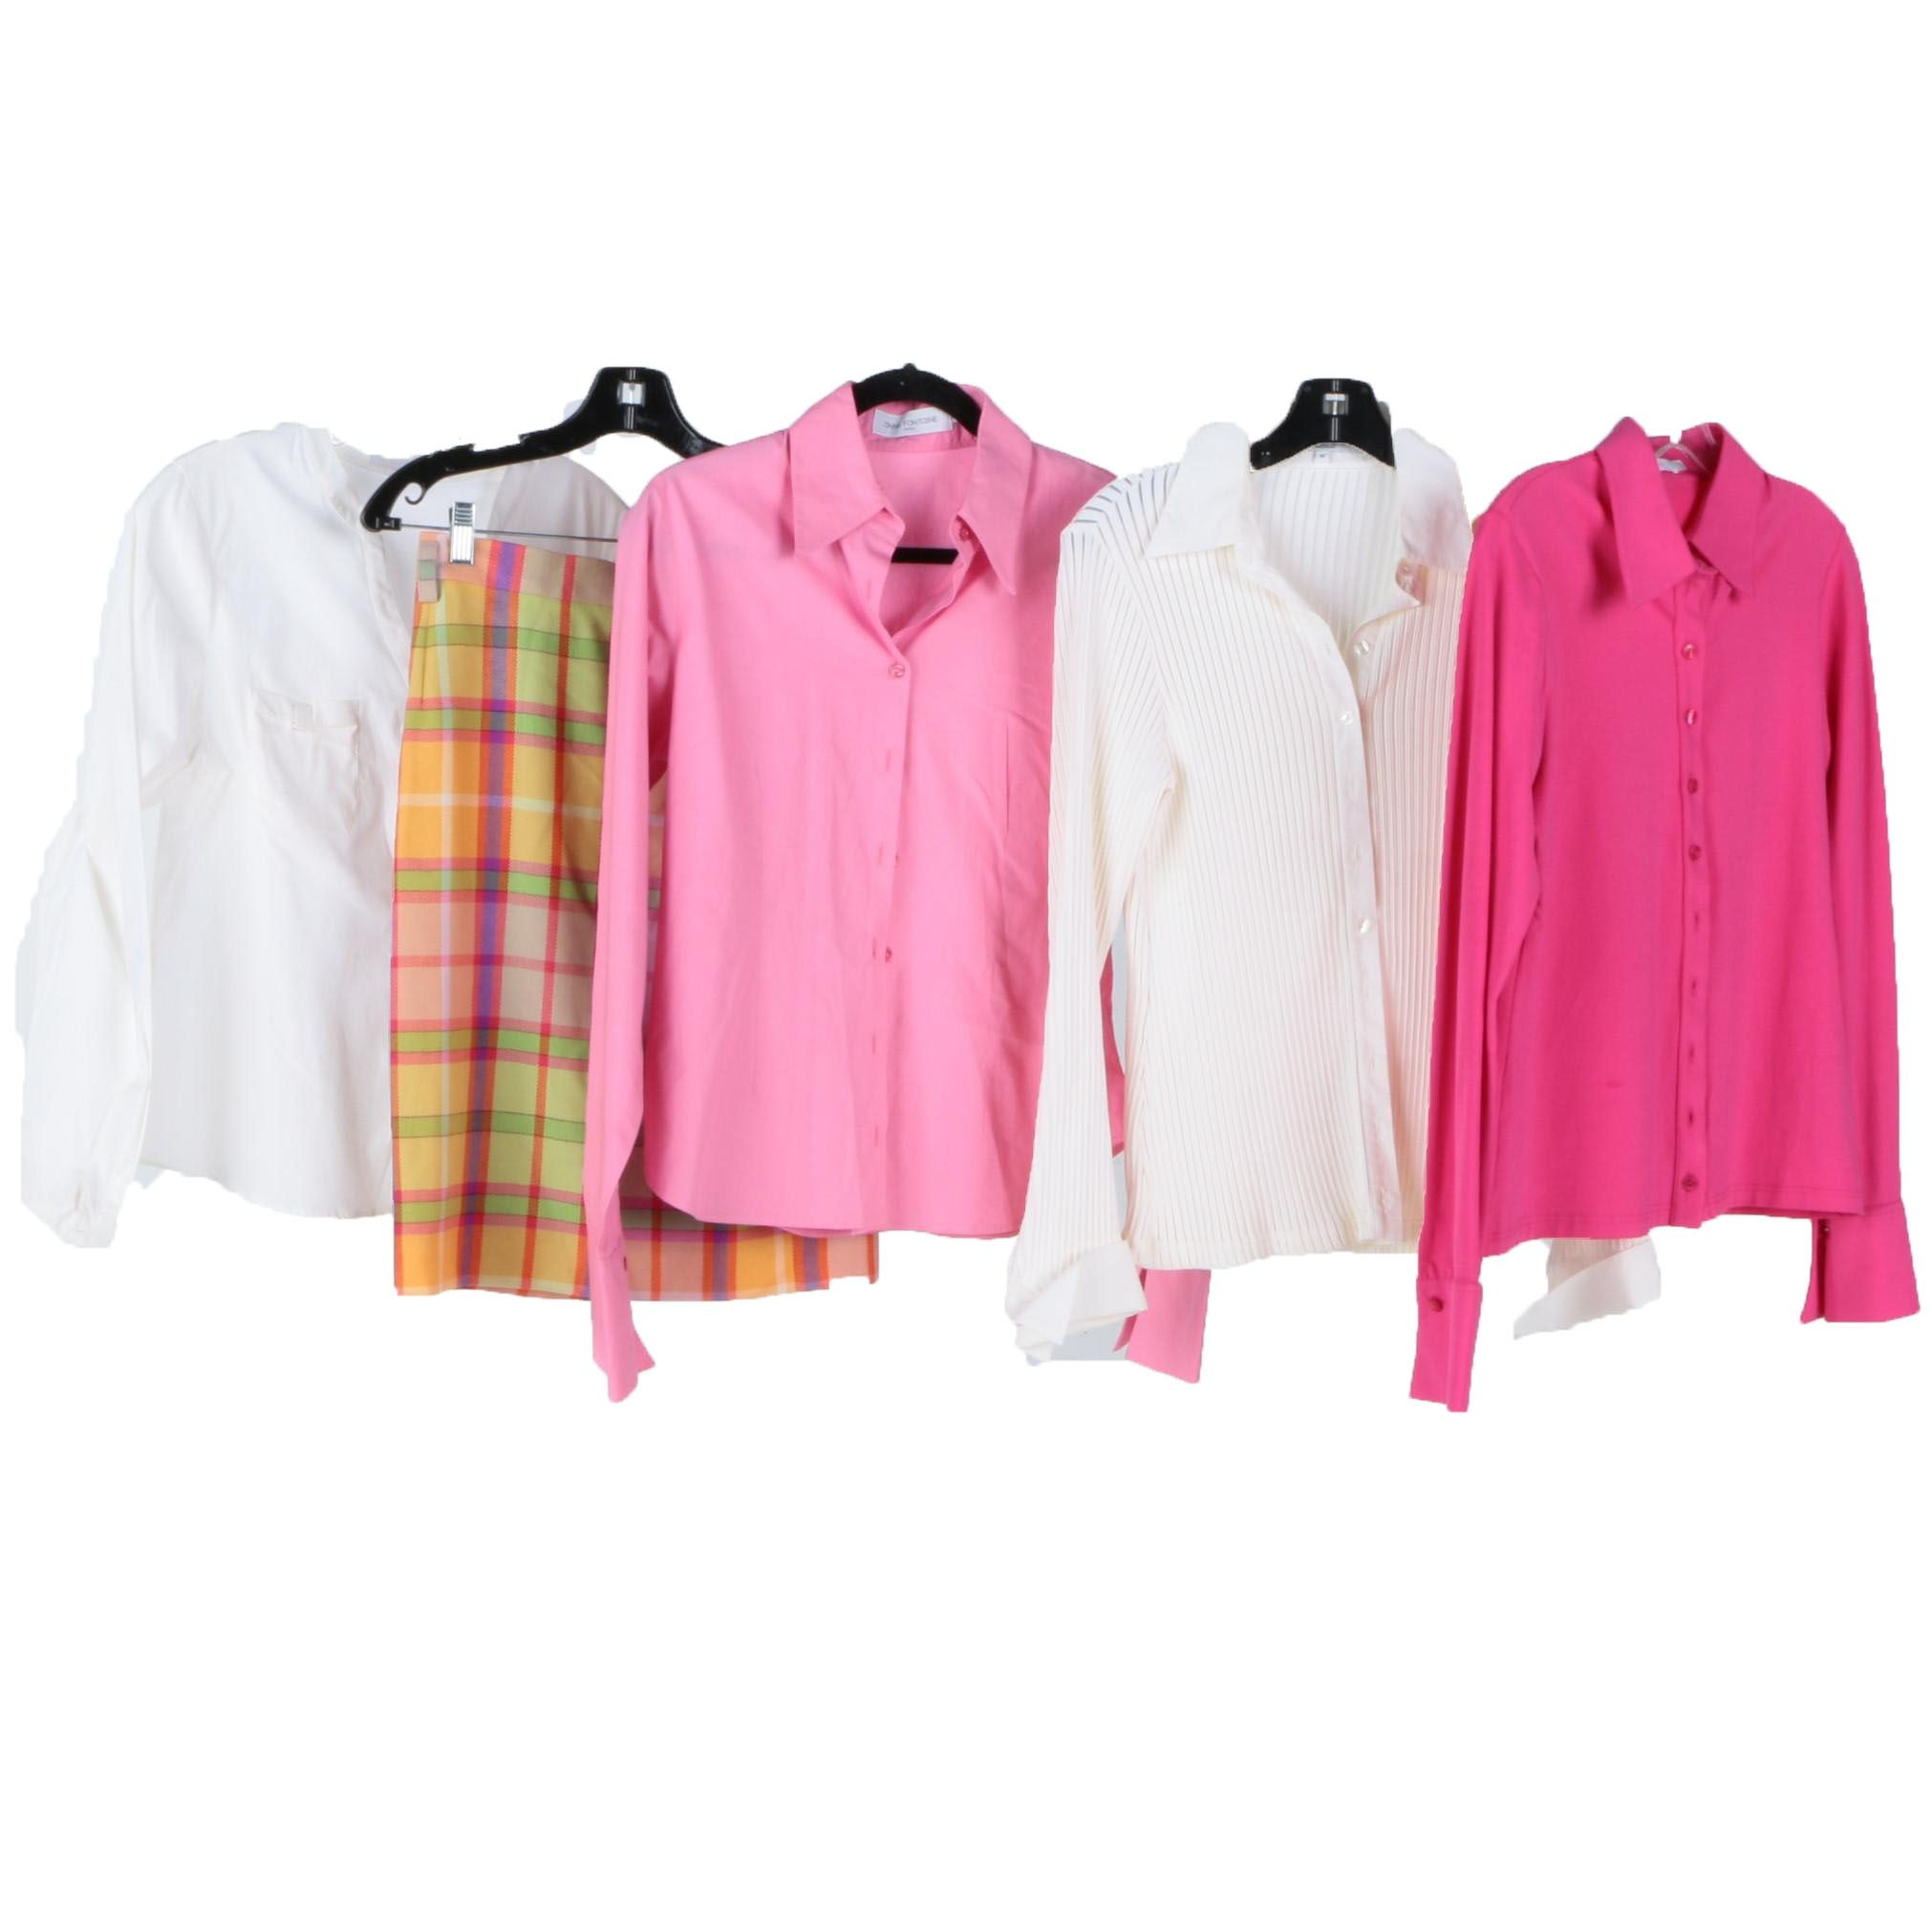 Anne Fontaine Shirts and Laurèl Wool Skirt